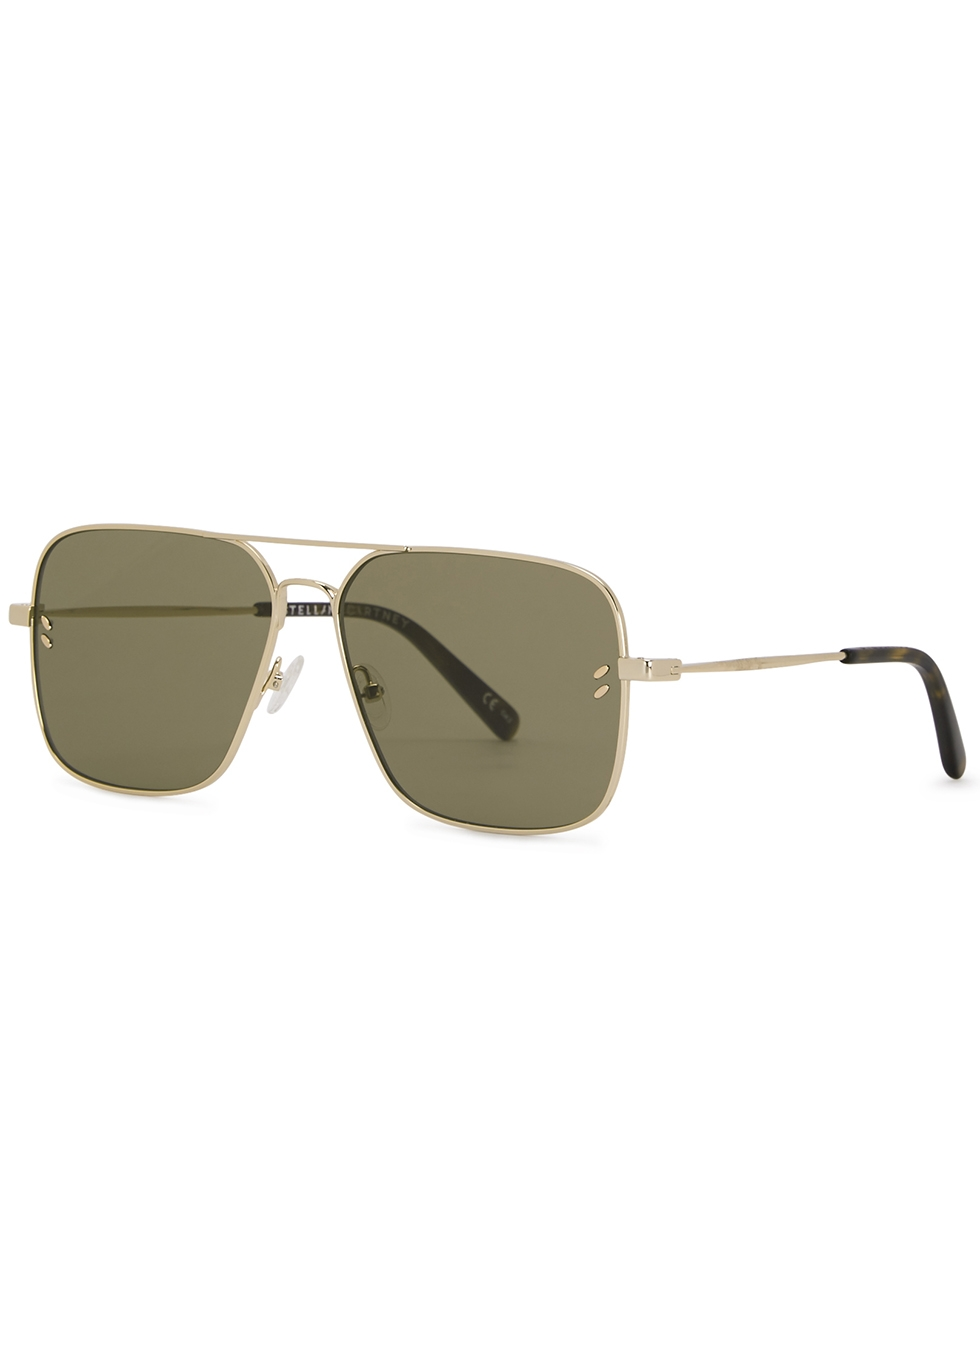 Gold-tone aviator-style sunglasses - Stella McCartney